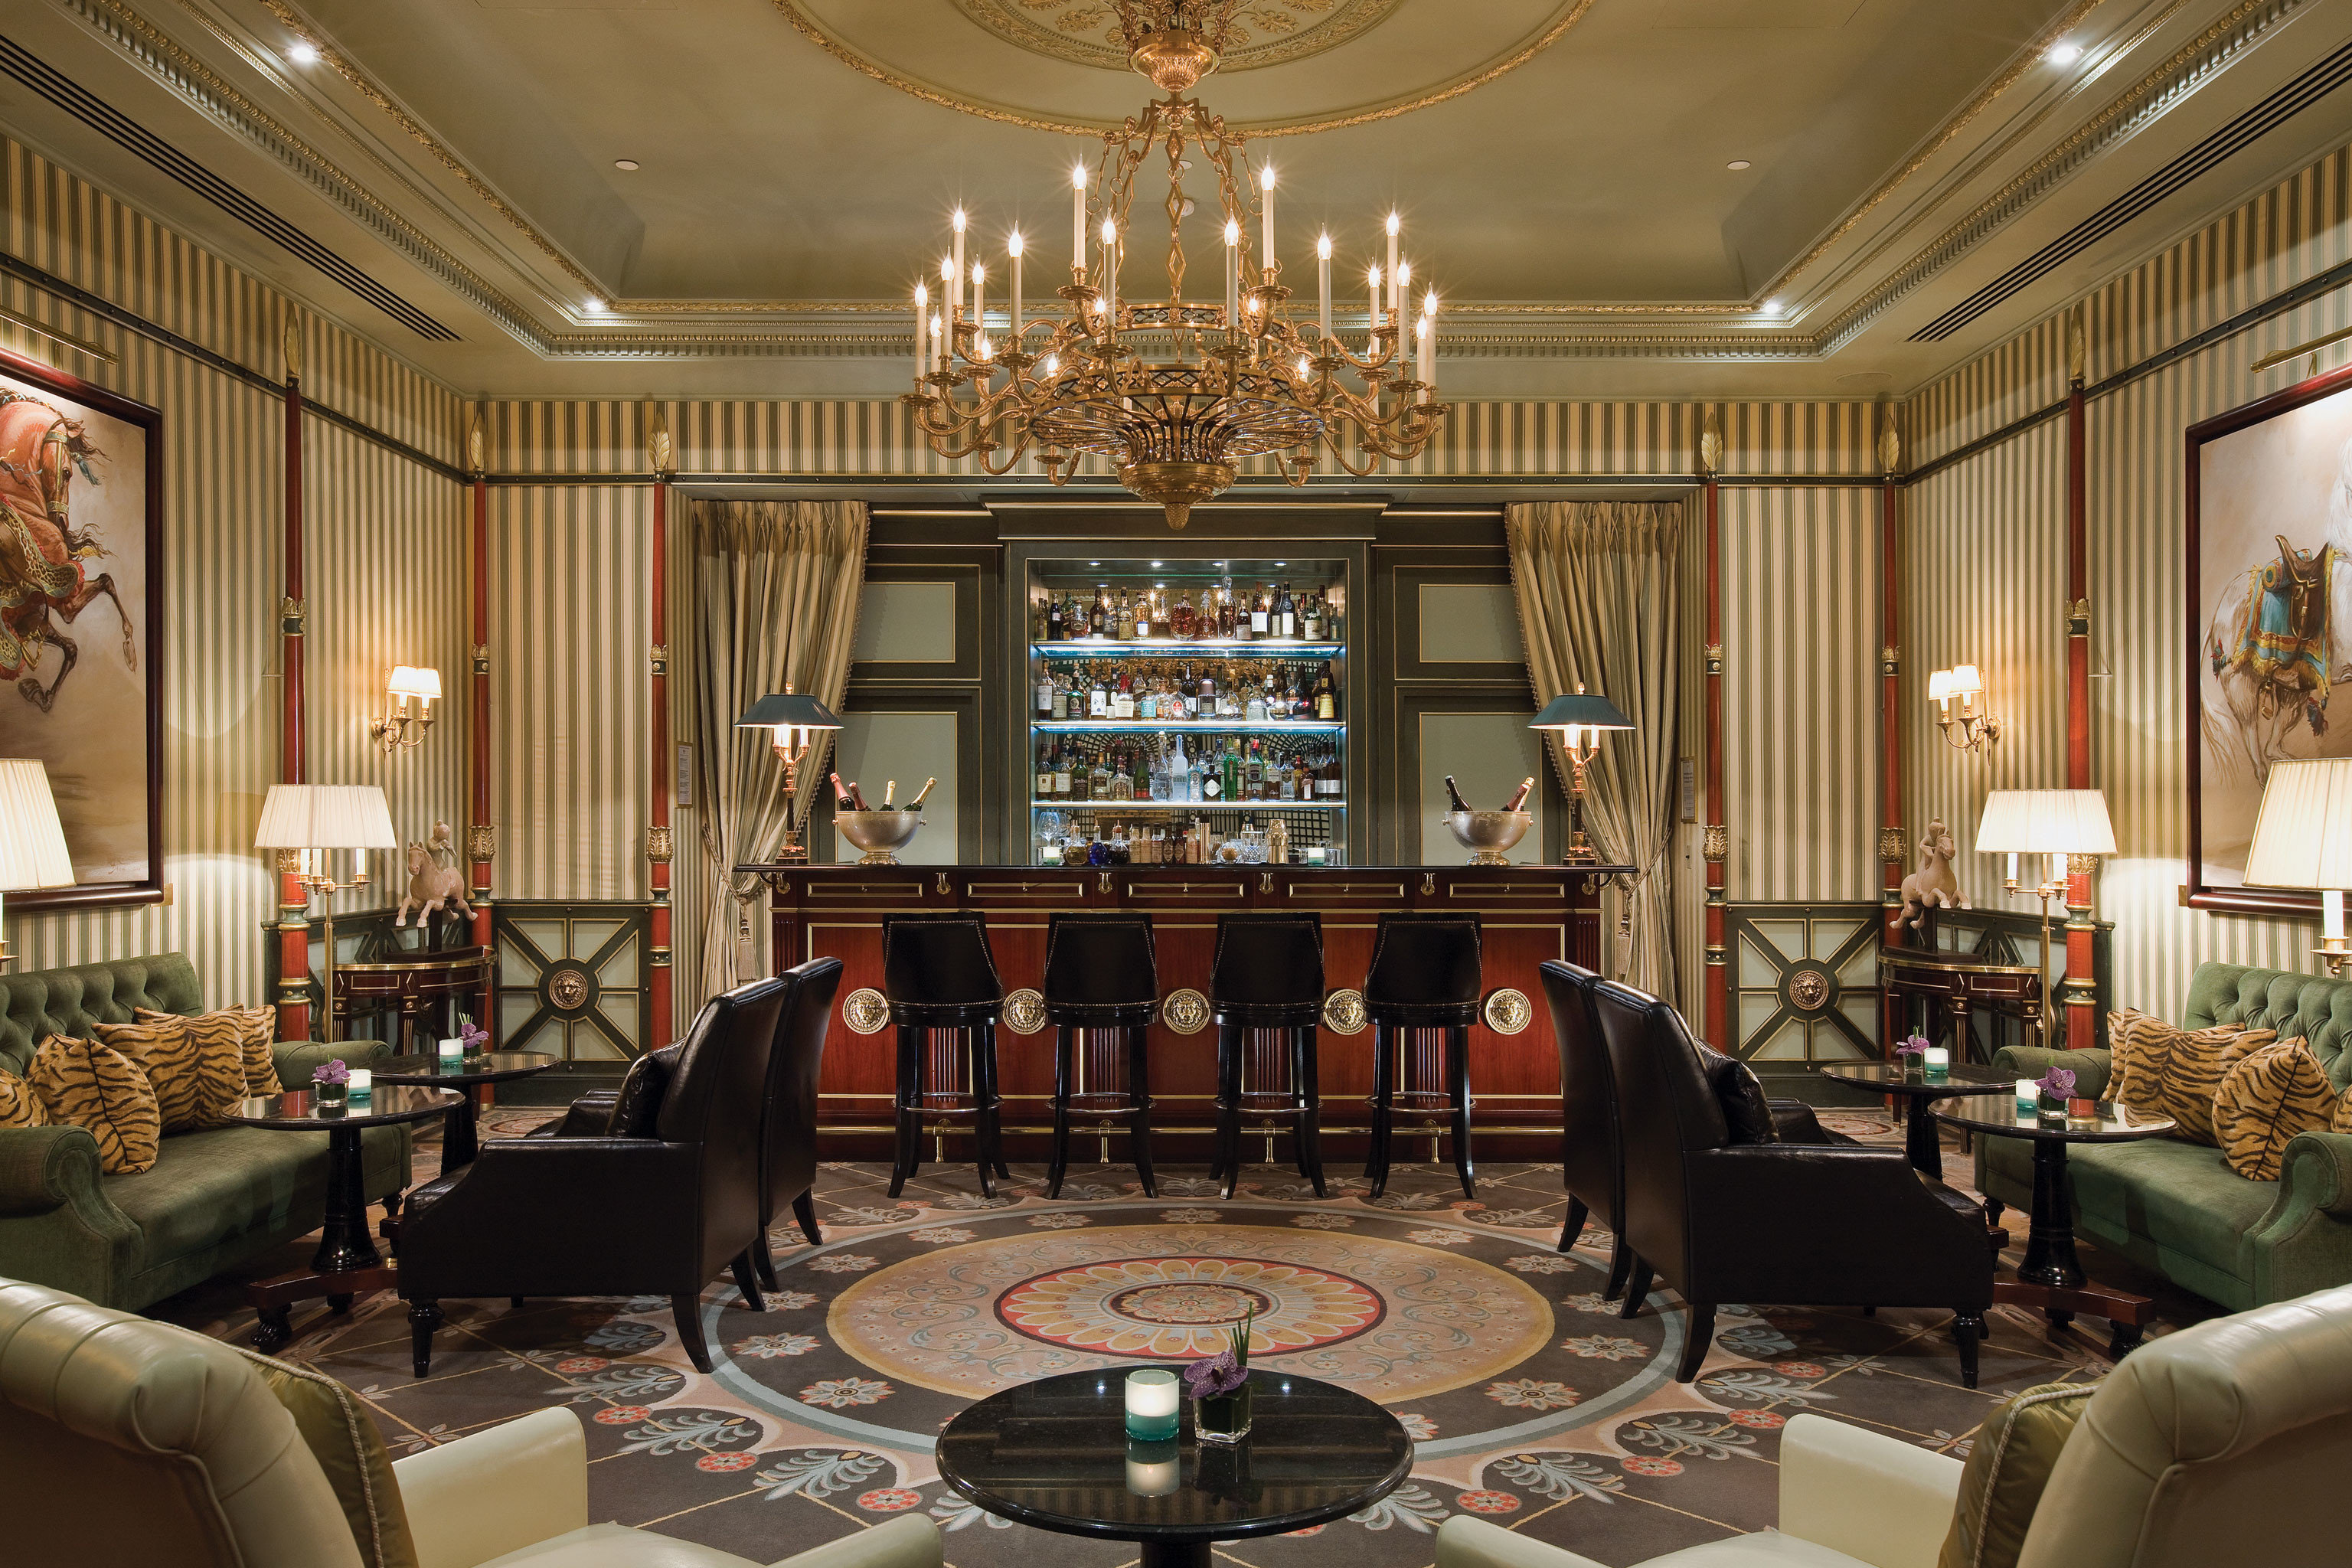 Elegant France Historic Hotels Living Lobby Lounge Luxury Paris Romance indoor room wall table sofa ceiling chair floor furniture window estate living room function hall interior design dining room home ballroom mansion palace restaurant area set decorated several